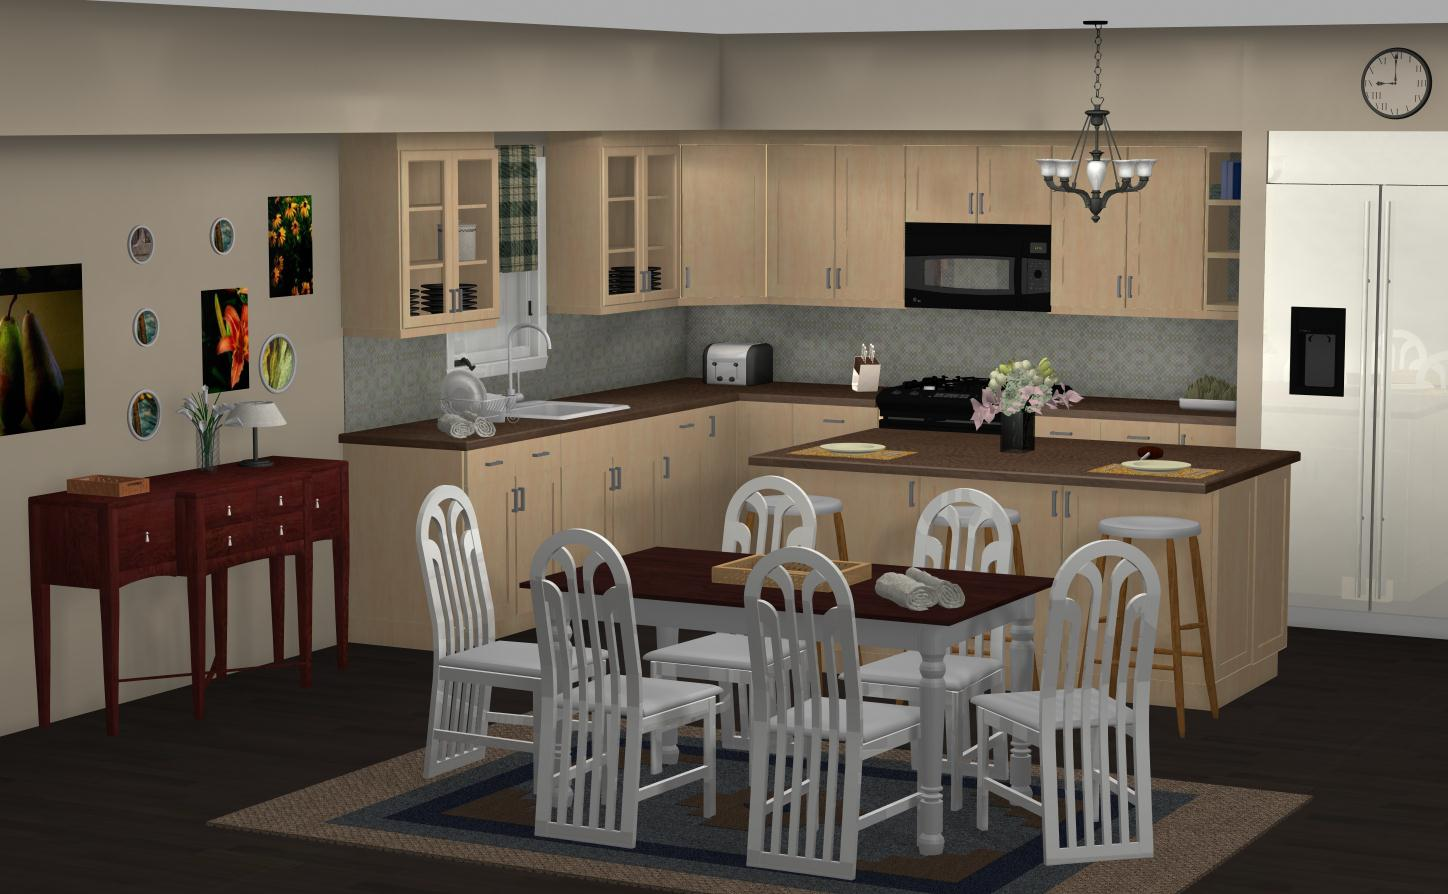 Famous kitchens get the look dunphy household modern family tv homes edition - Show picture of kitchen ...